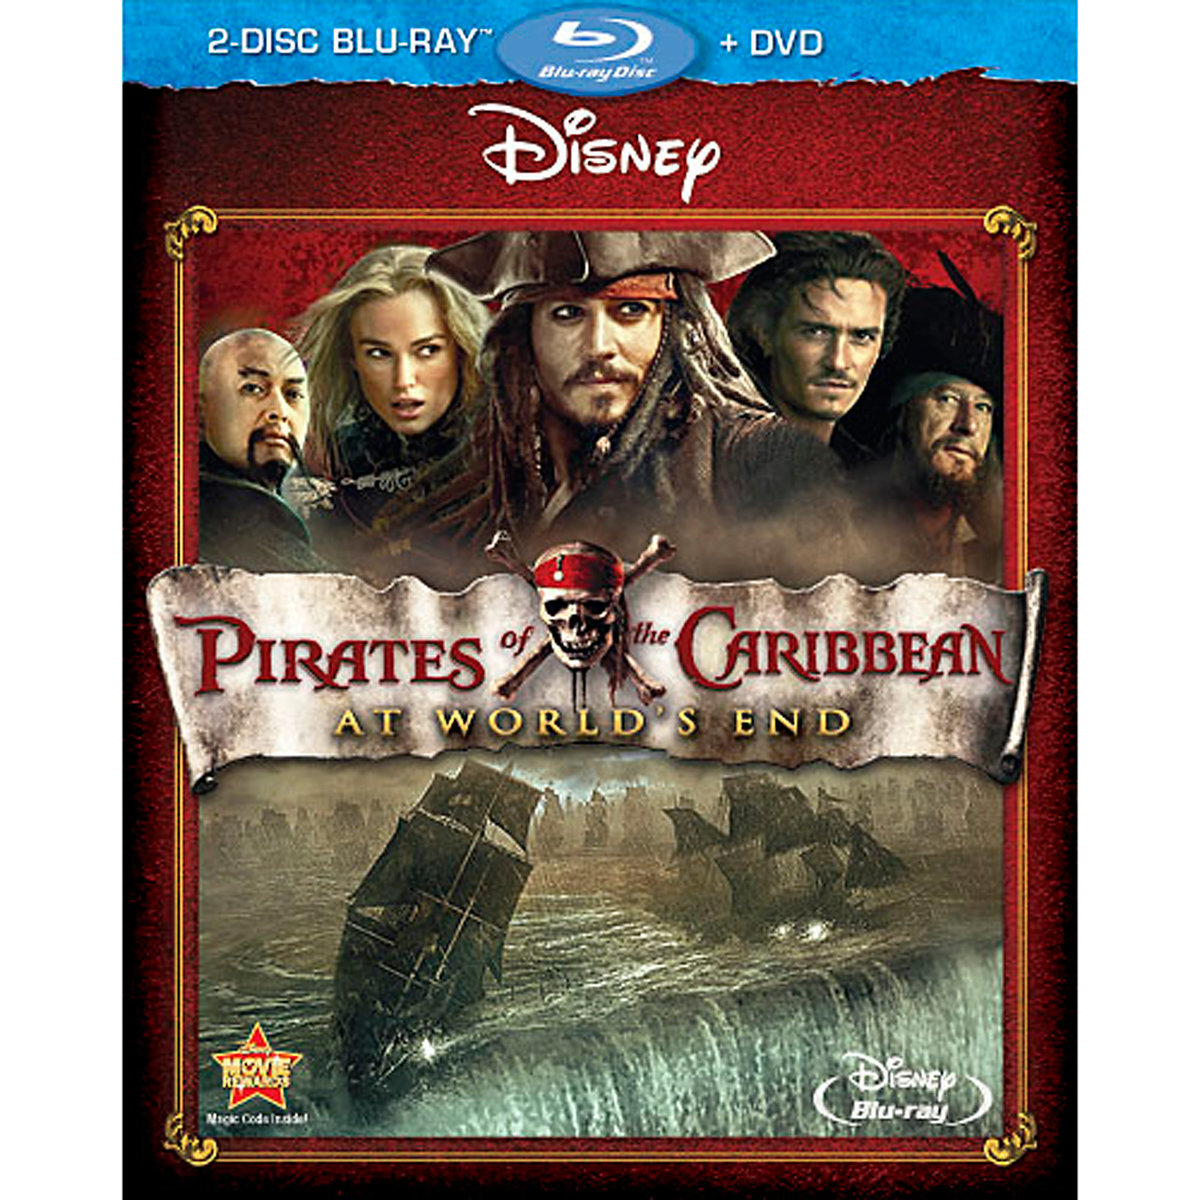 Pirates of the Caribbean: At World's End (2-Disc Blu-ray + DVD)